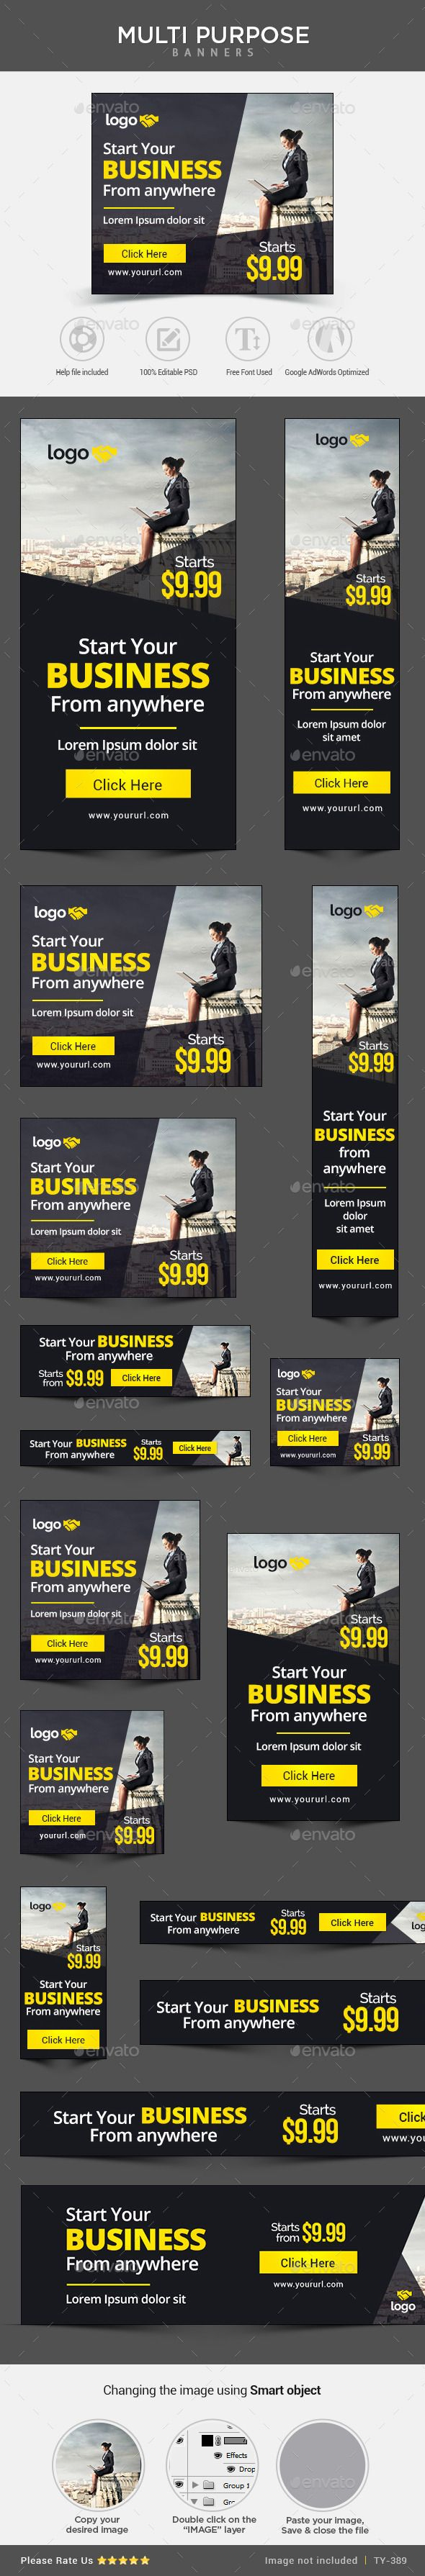 Business Web Banners Template | Download: http://graphicriver.net/item/business-banners-/11056394?ref=ksioks